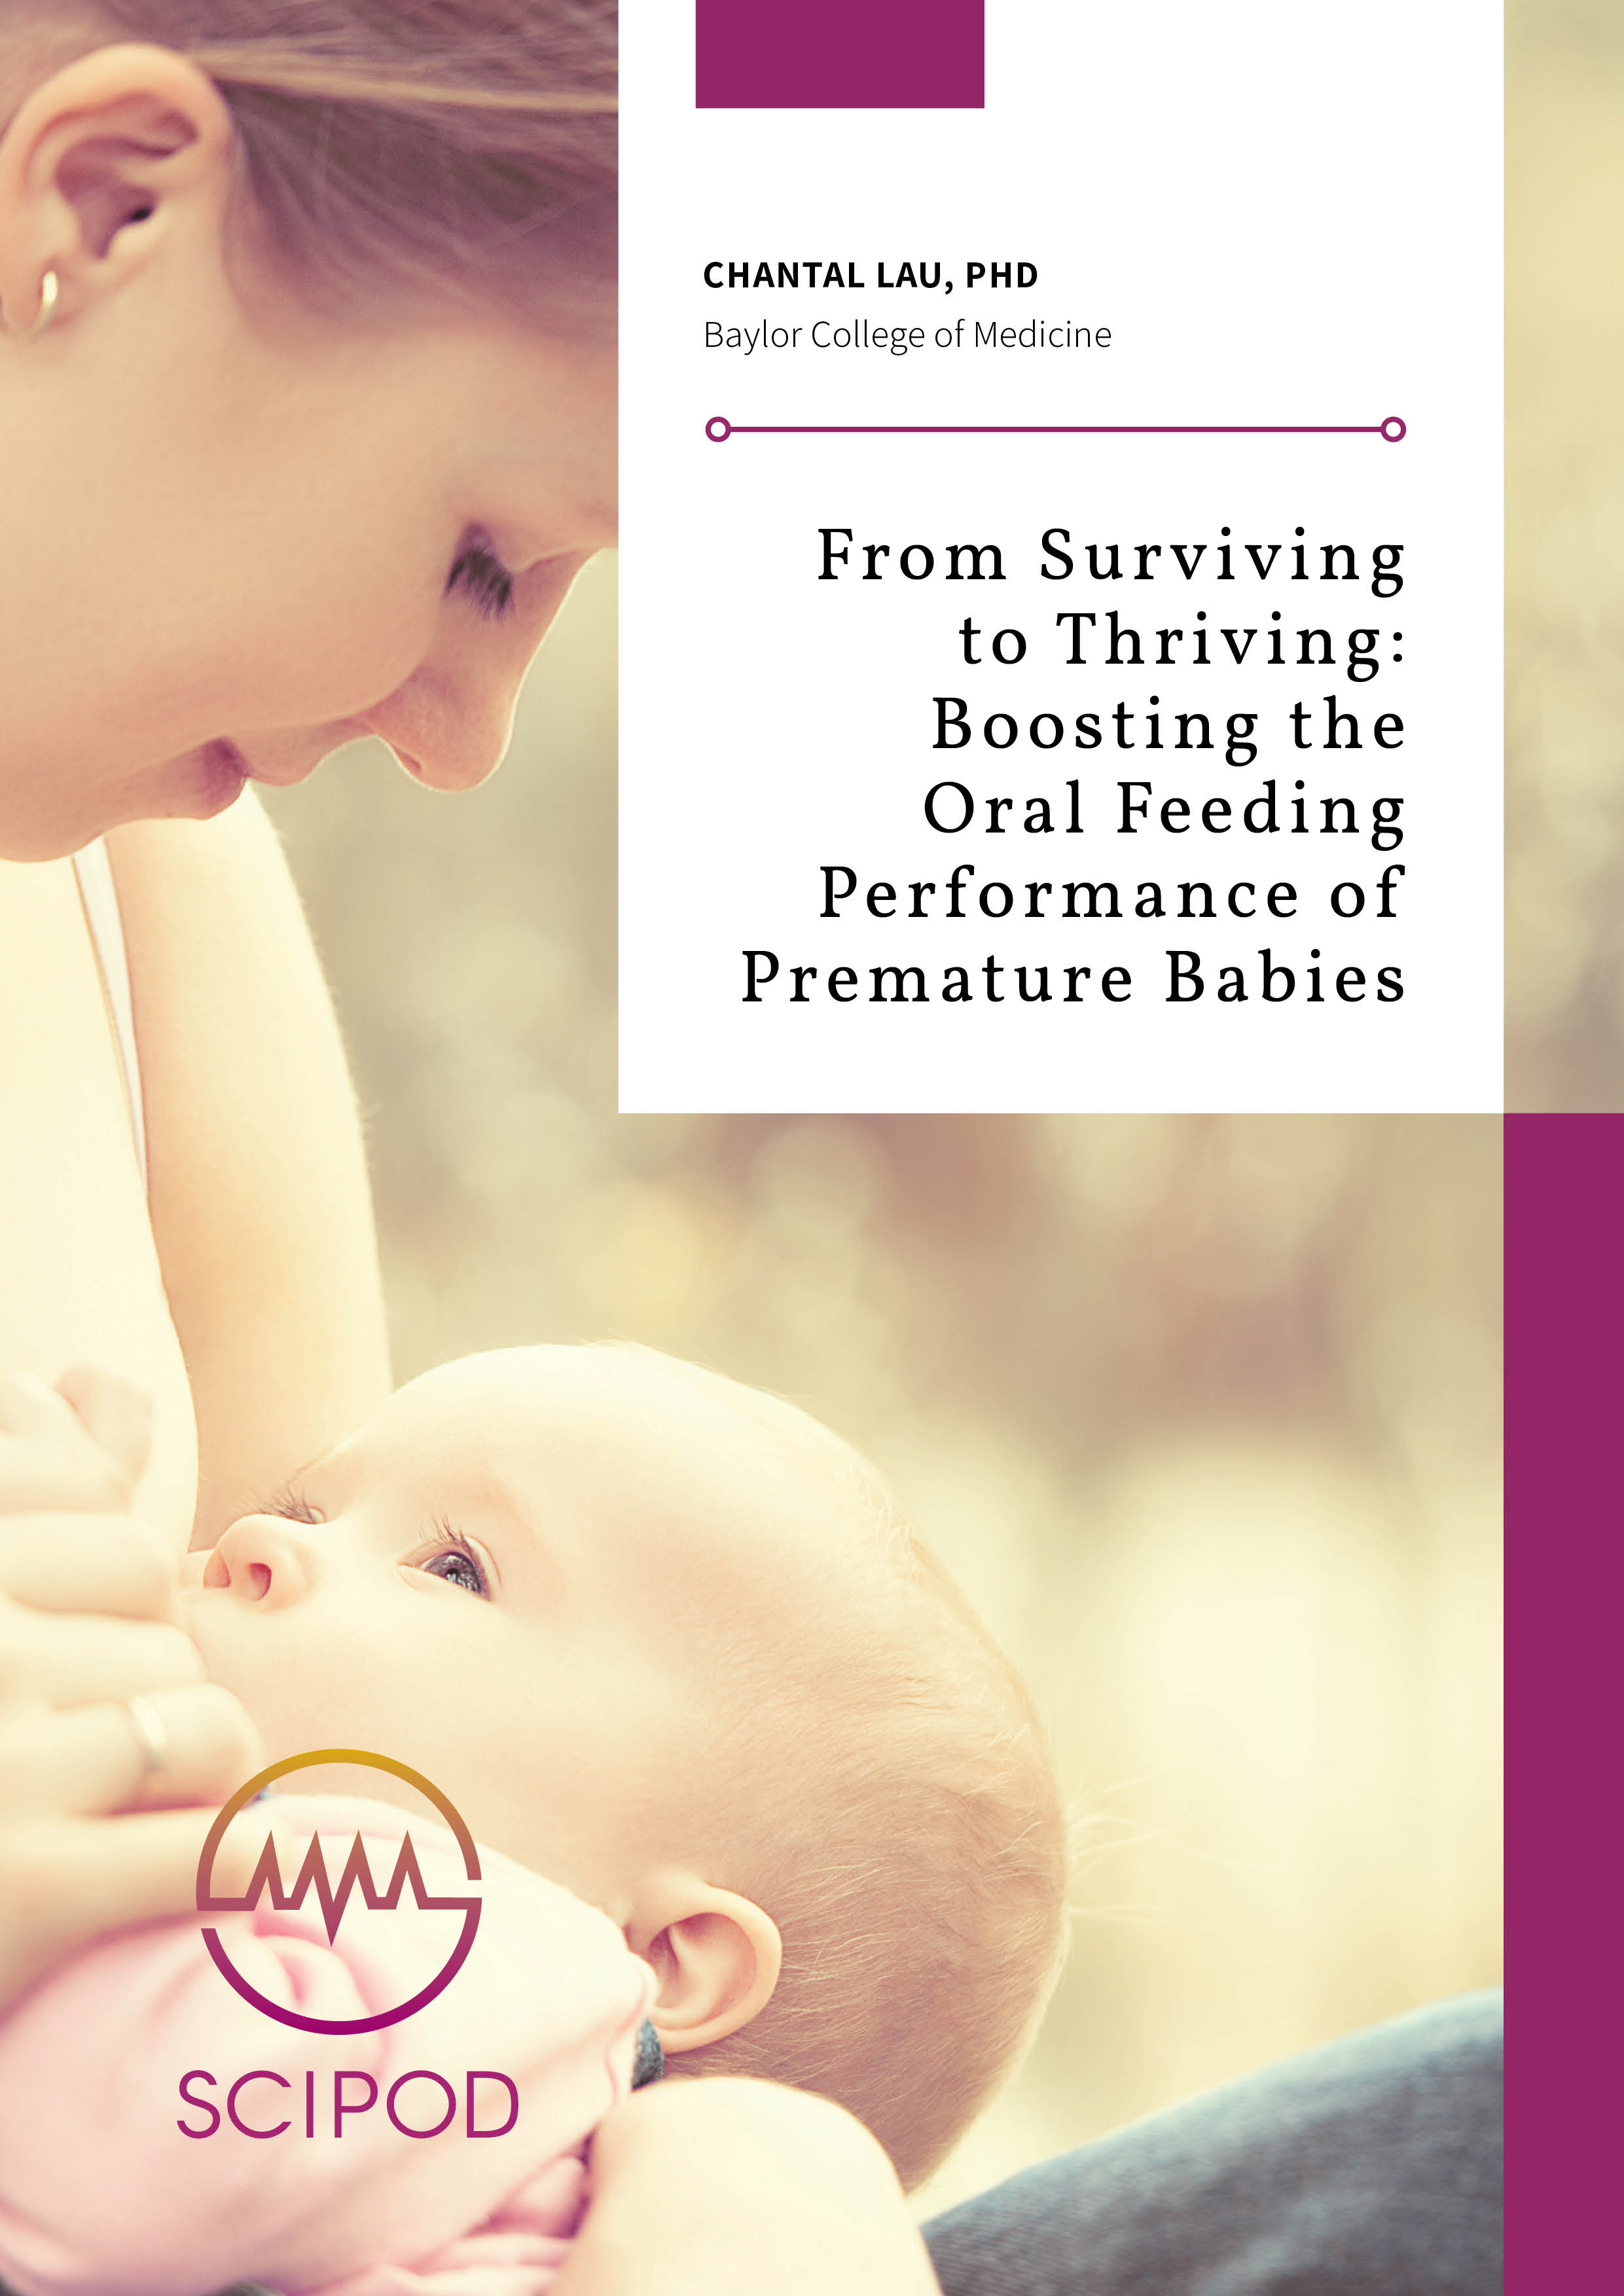 From Surviving to Thriving Boosting the Oral Feeding Performance of Premature Babies – CHANTAL LAU, PHD BAYLOR COLLEGE OF MEDICINE